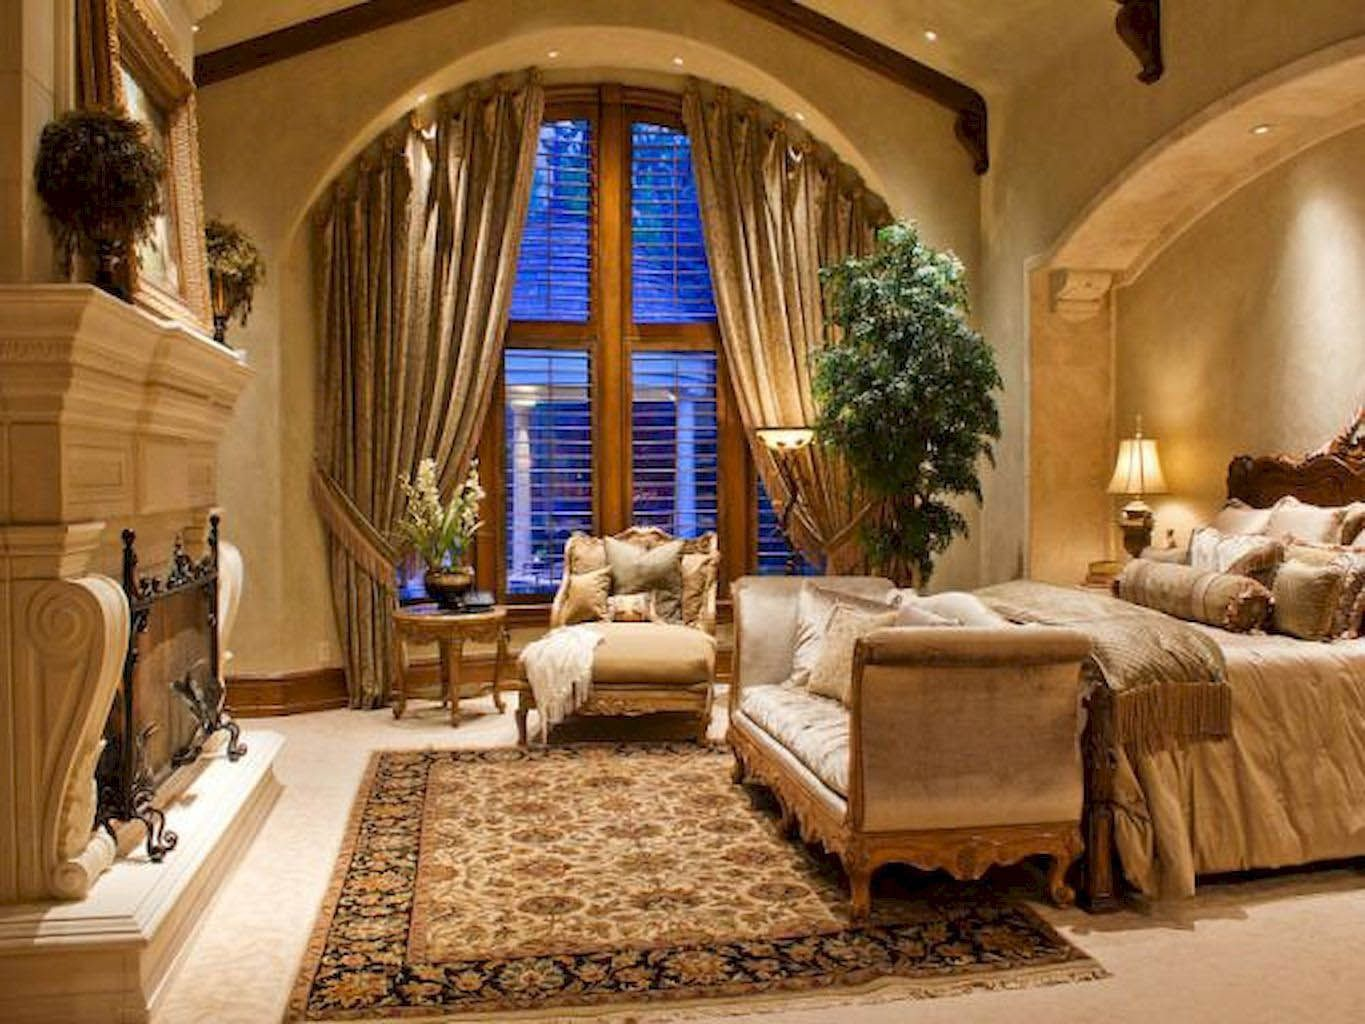 The Very Best Cheap Romantic Bedroom Ideas | Country ...